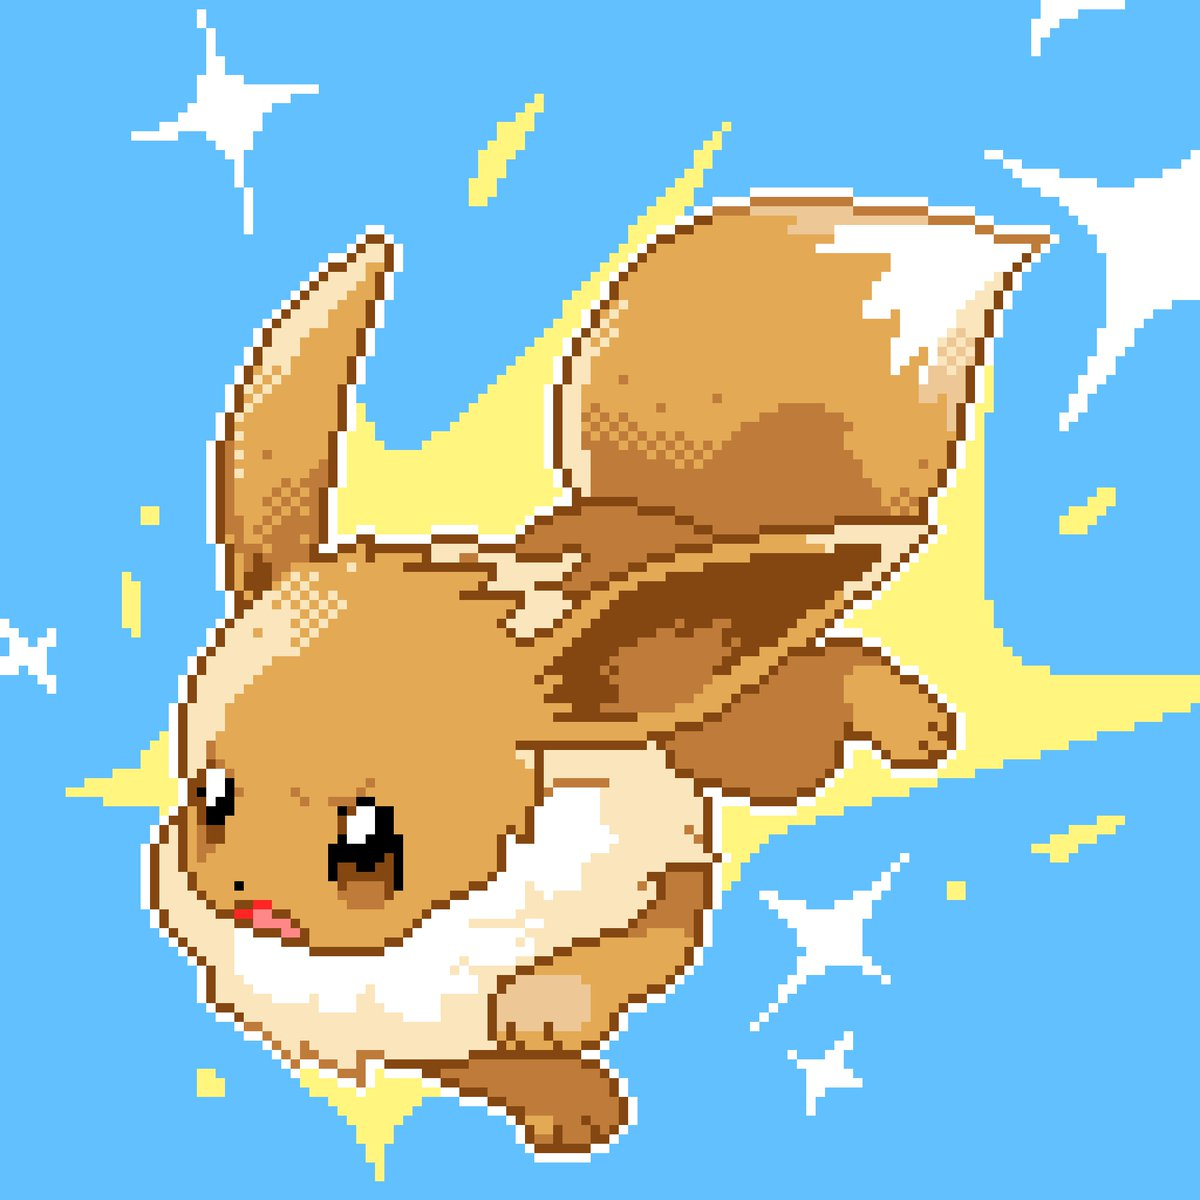 Pokémon Pixels On Twitter Veevee Volley Drawn With